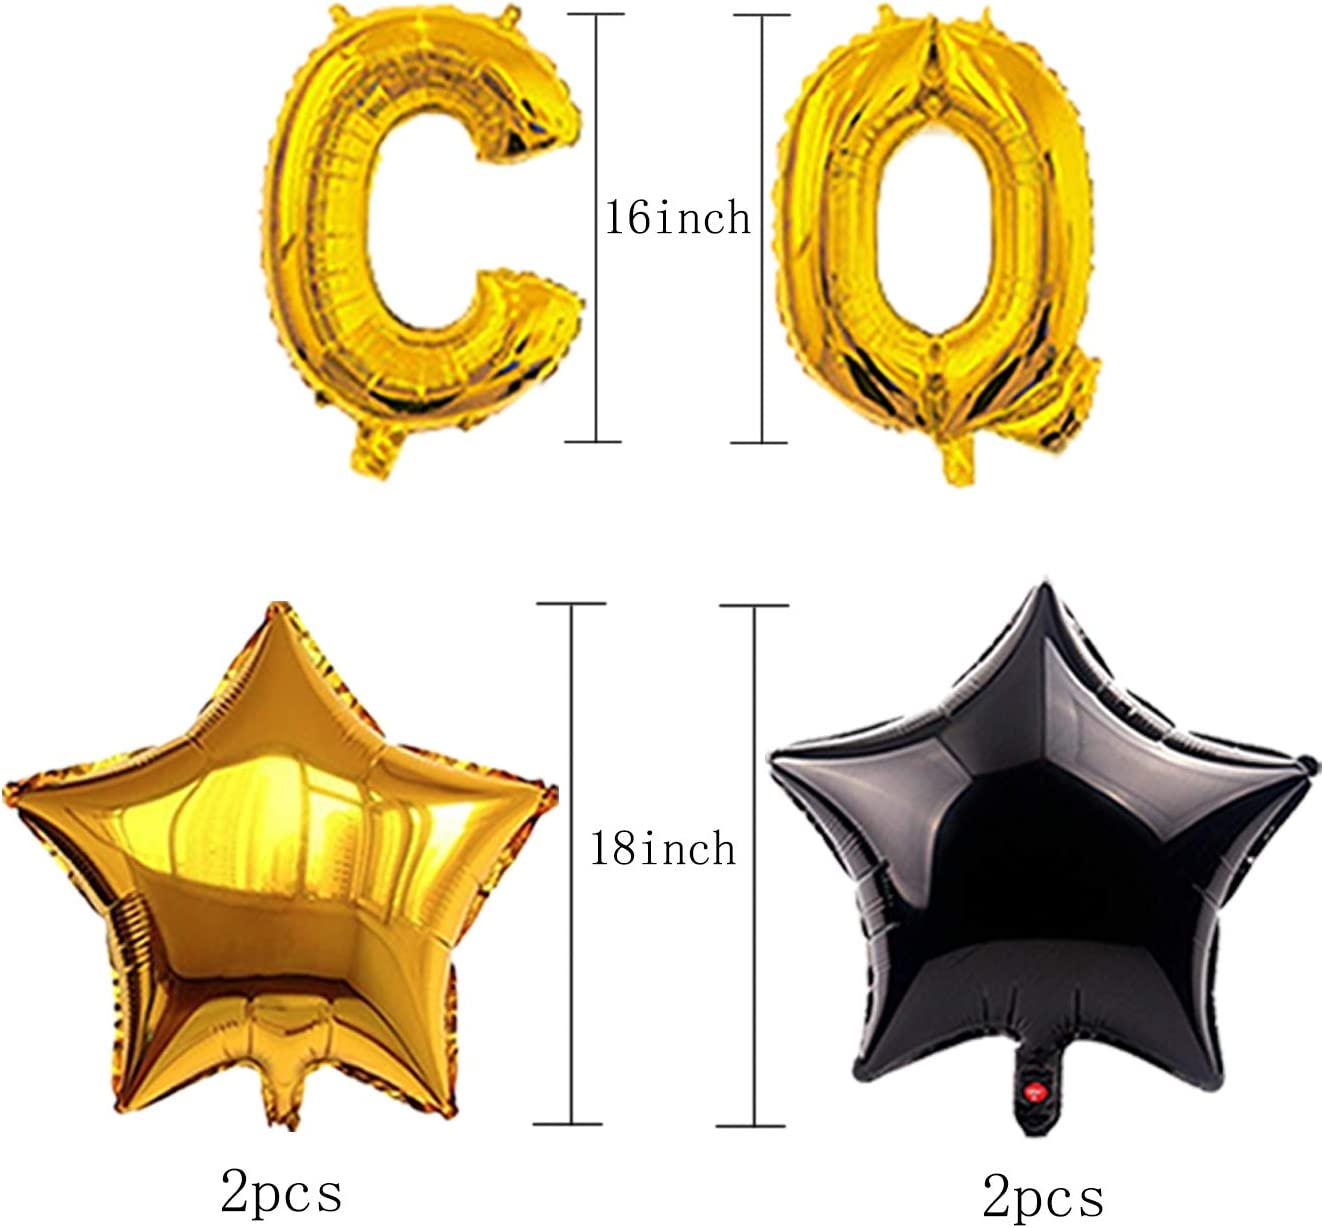 Star Foil Balloons Black and Gold Congrats Grad Balloons for Grad Party Supplies PhD balloons Graduation Decorations 2021 Best Graduation Party Favors Decorations for Class of 2021 066A